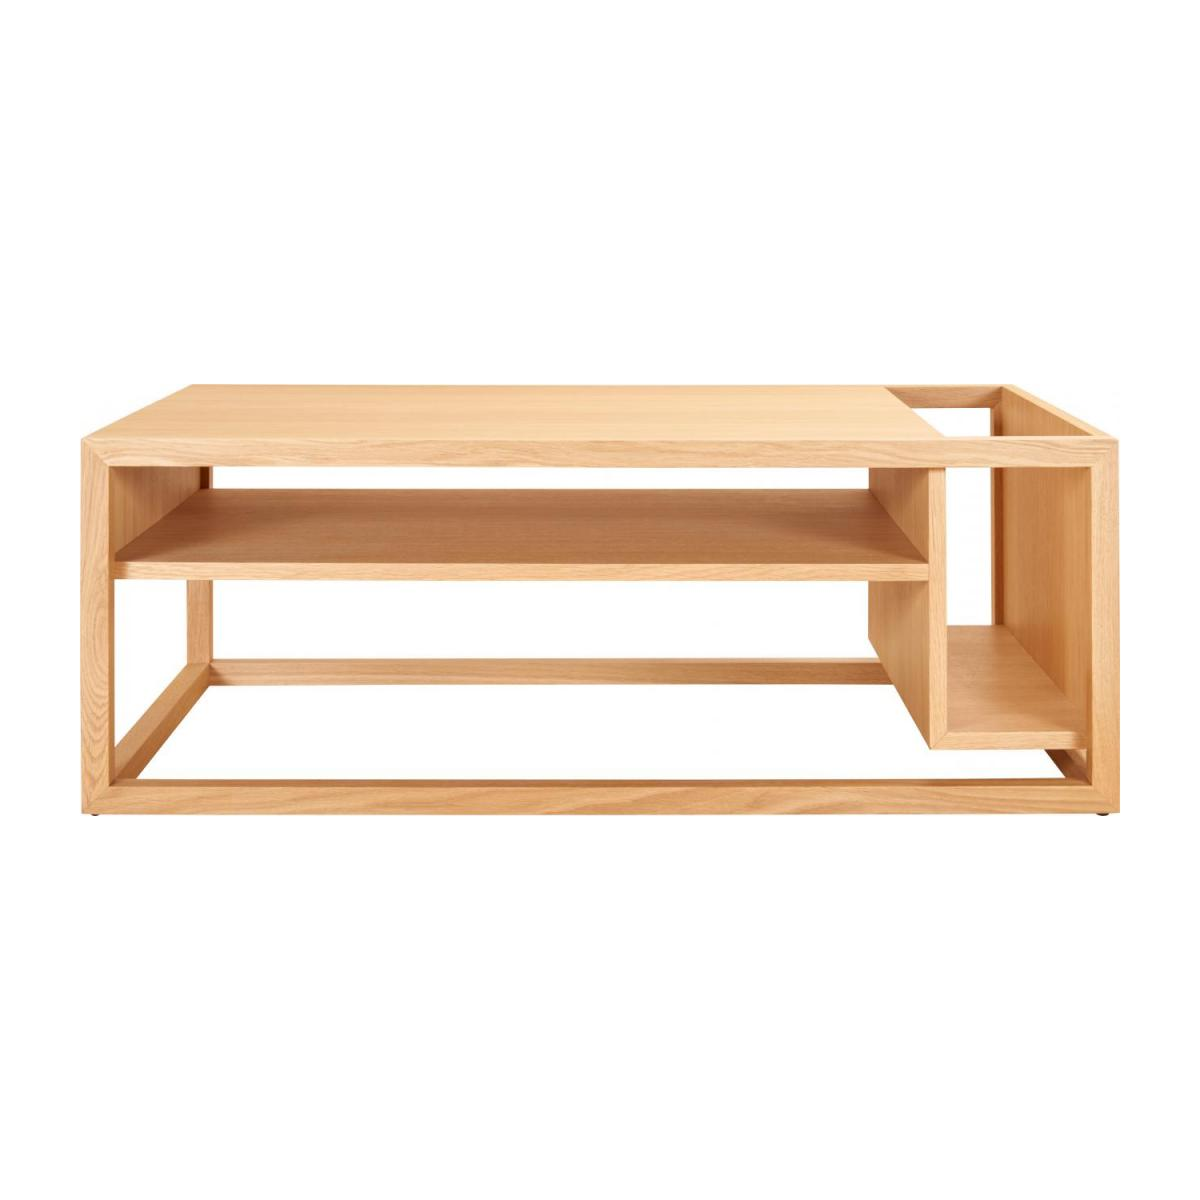 Low table with oak bar n°3